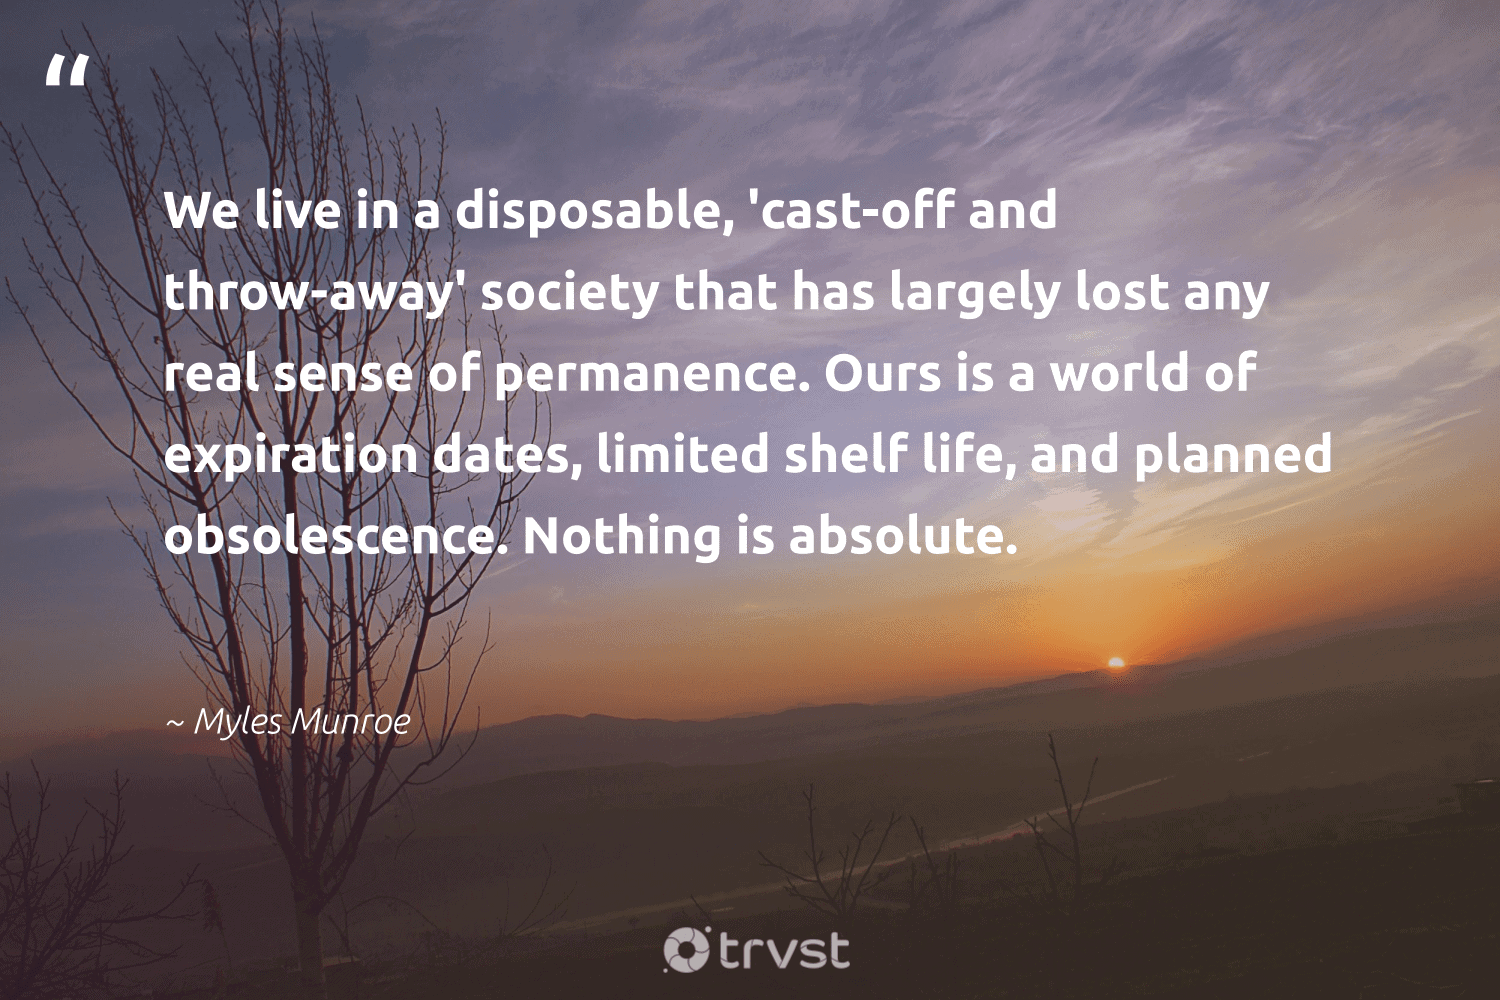 """""""We live in a disposable, 'cast-off and throw-away' society that has largely lost any real sense of permanence. Ours is a world of expiration dates, limited shelf life, and planned obsolescence. Nothing is absolute.""""  - Myles Munroe #trvst #quotes #society #waronwaste #takeaction #ecofriendly #beinspired #loveourplanet #changetheworld #earthdayeveryday #dotherightthing #bethechange"""